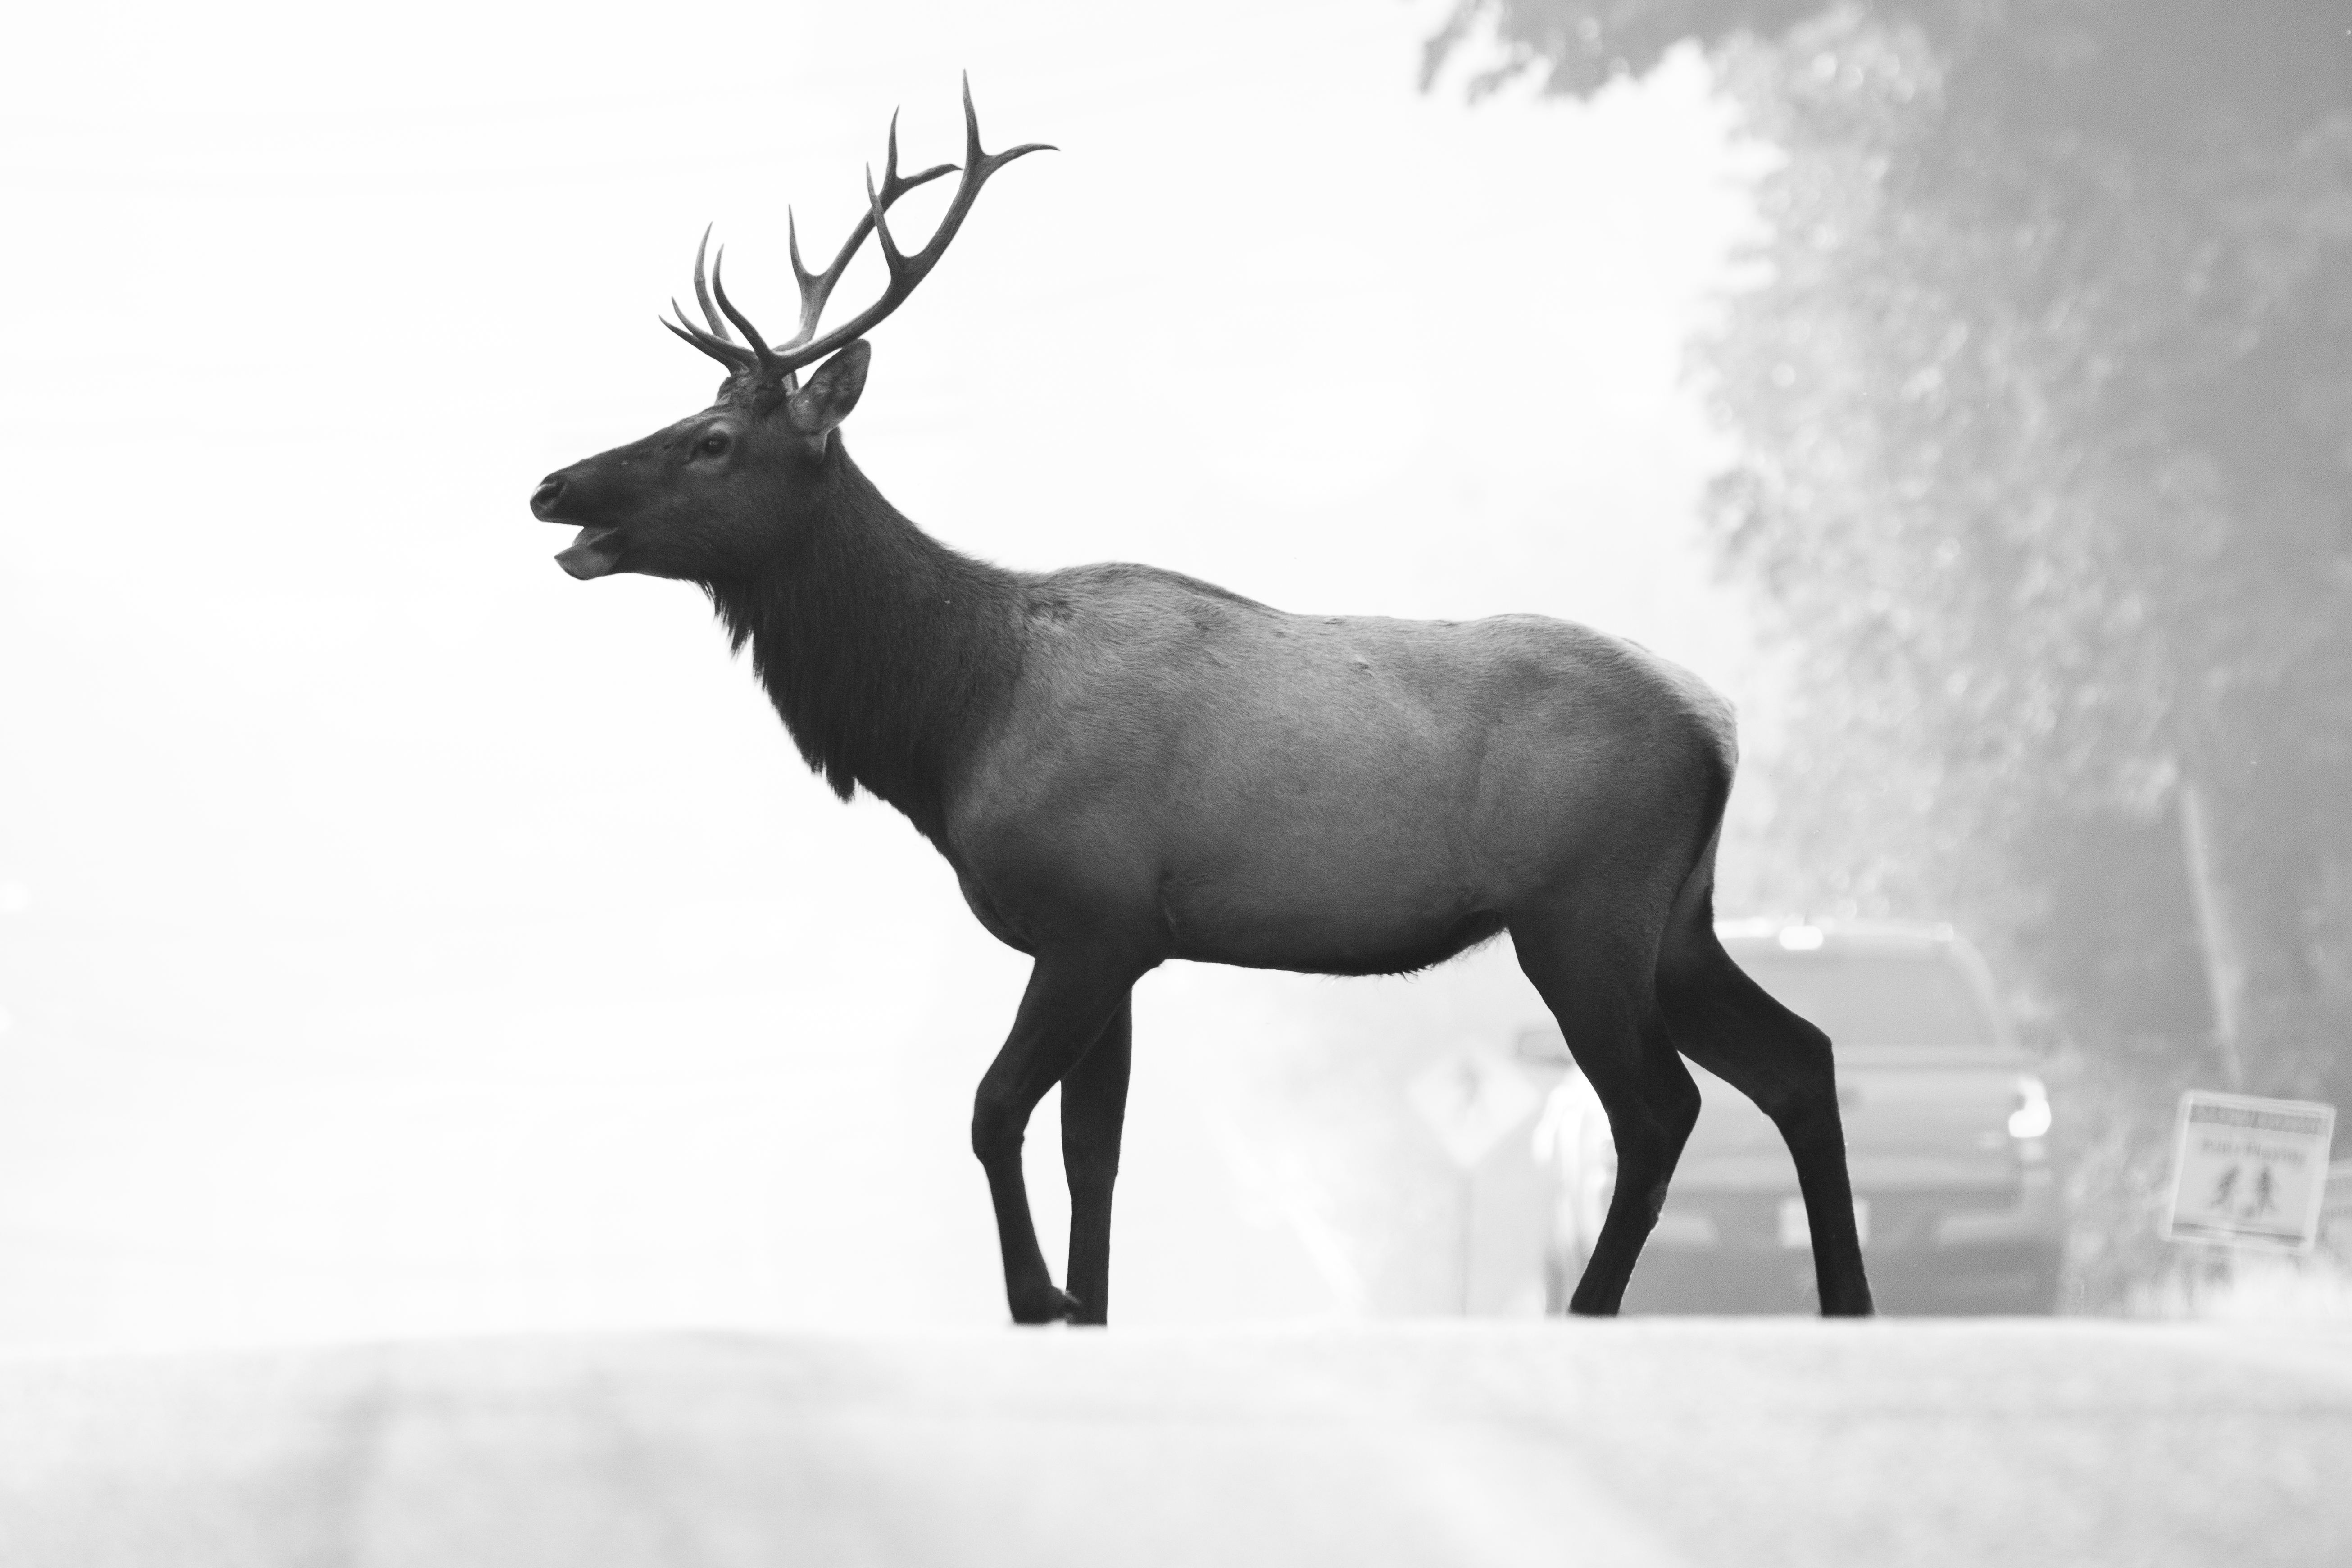 A moose walks across the road, the background is thick with smoke